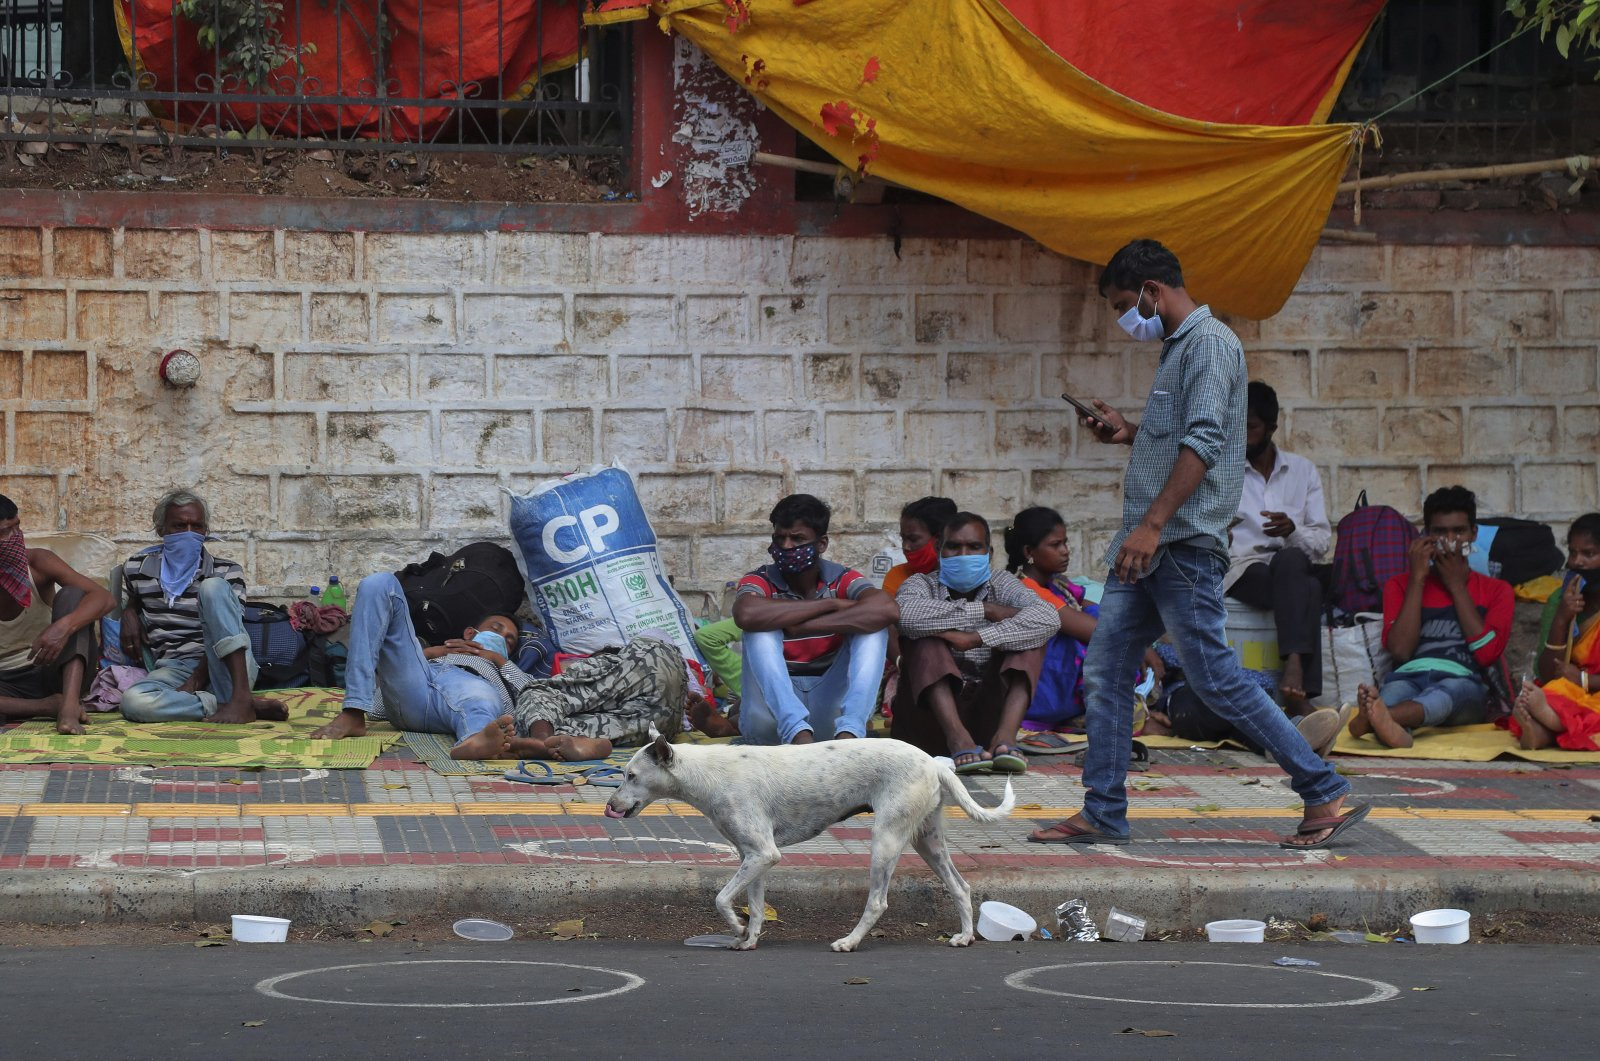 Migrant workers from other states rest on a pavement as they wait for trains to their home states, Hyderabad, India, June 9, 2020. (AP Photo)